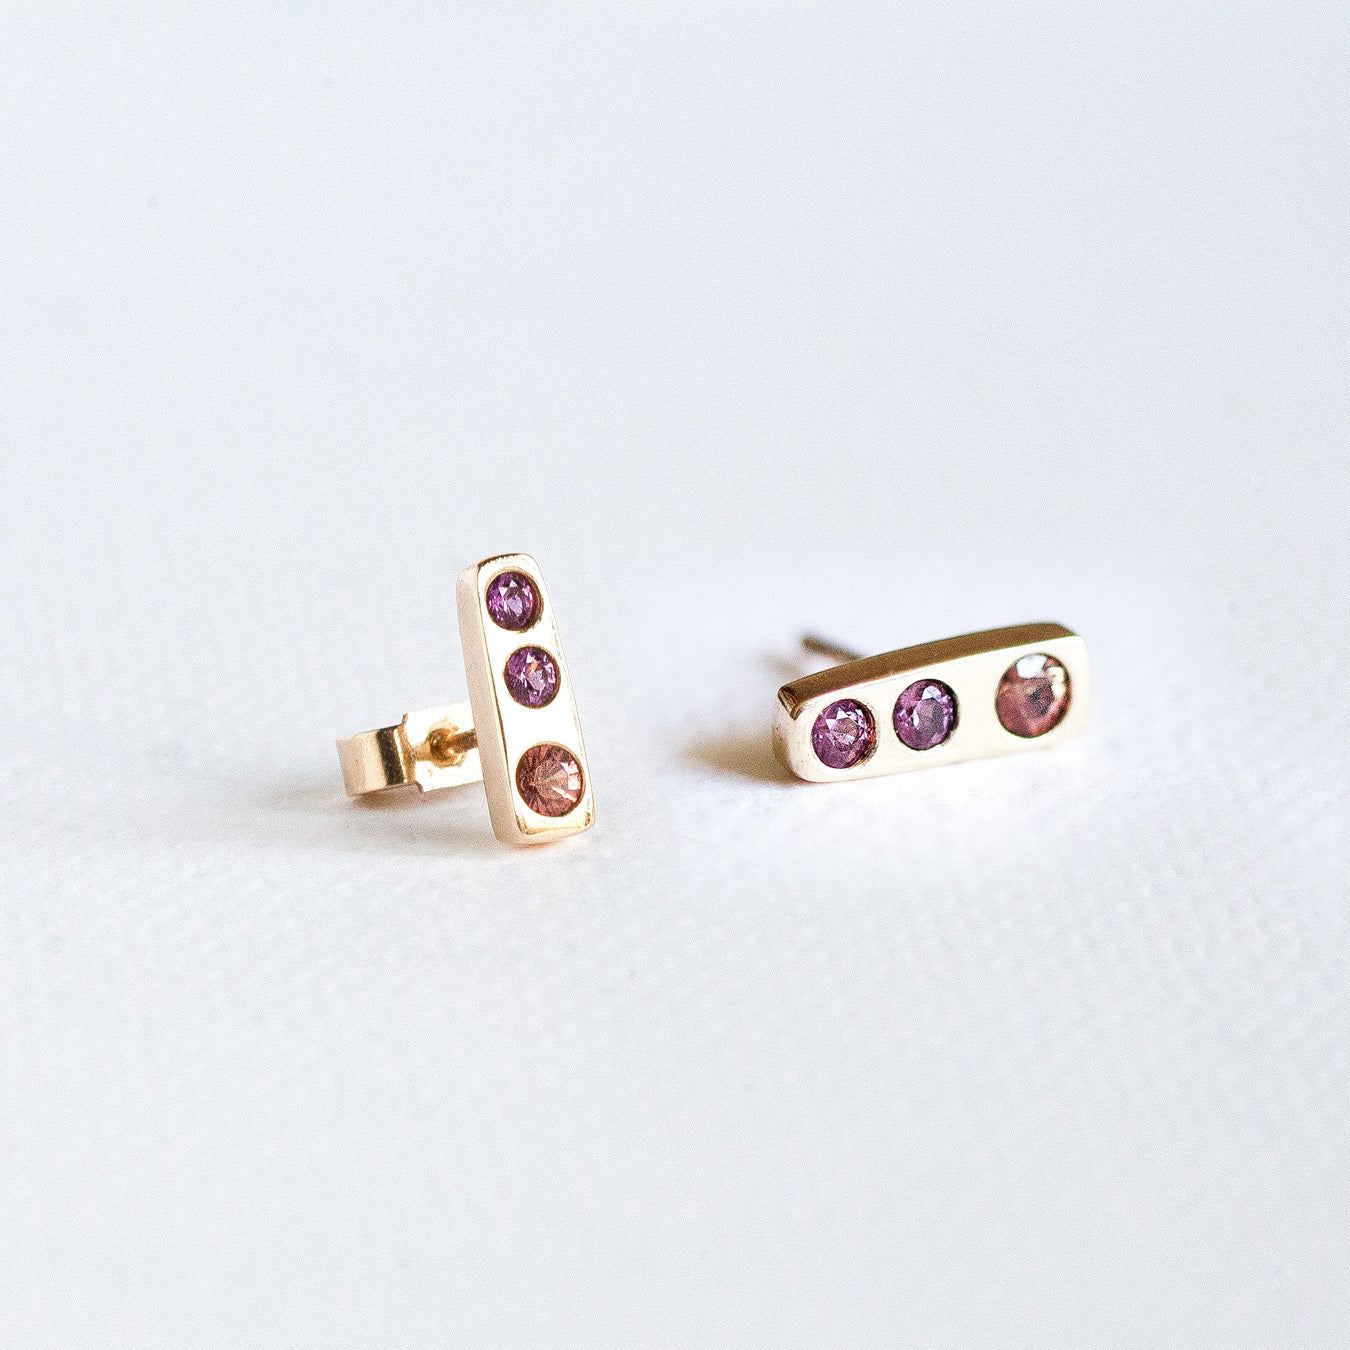 Box of Light Stud Earrings in Pinks